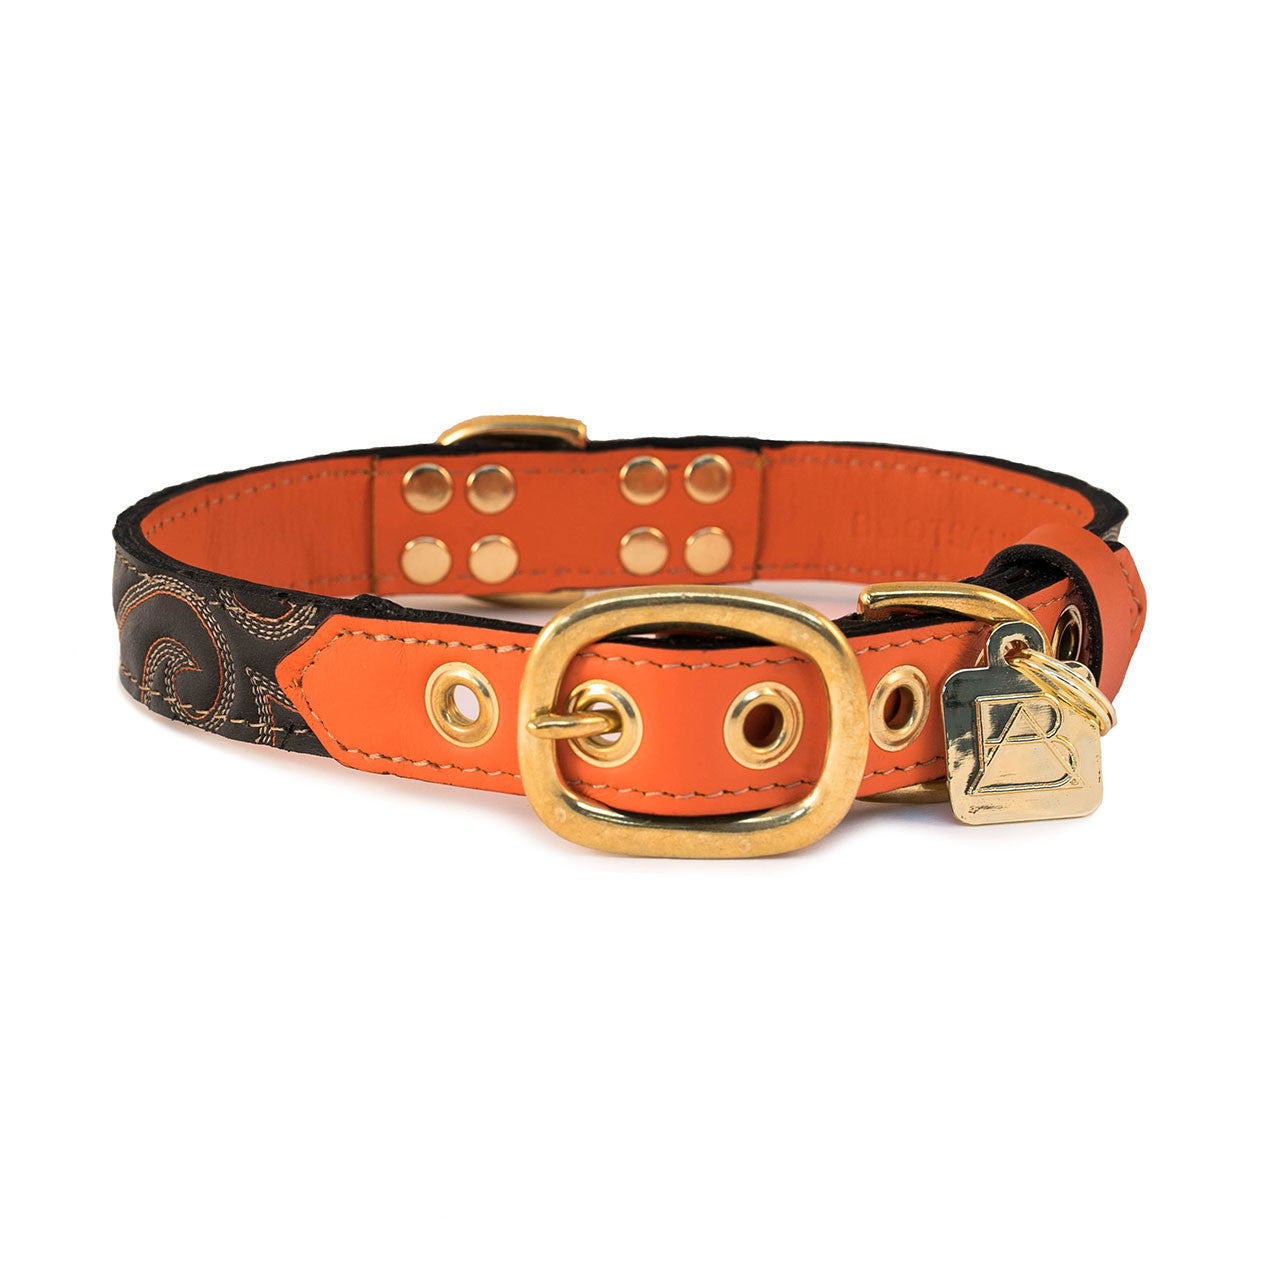 Orange Dog Collar with Dark Chocolate Leather + Orange and Ivory Stitching